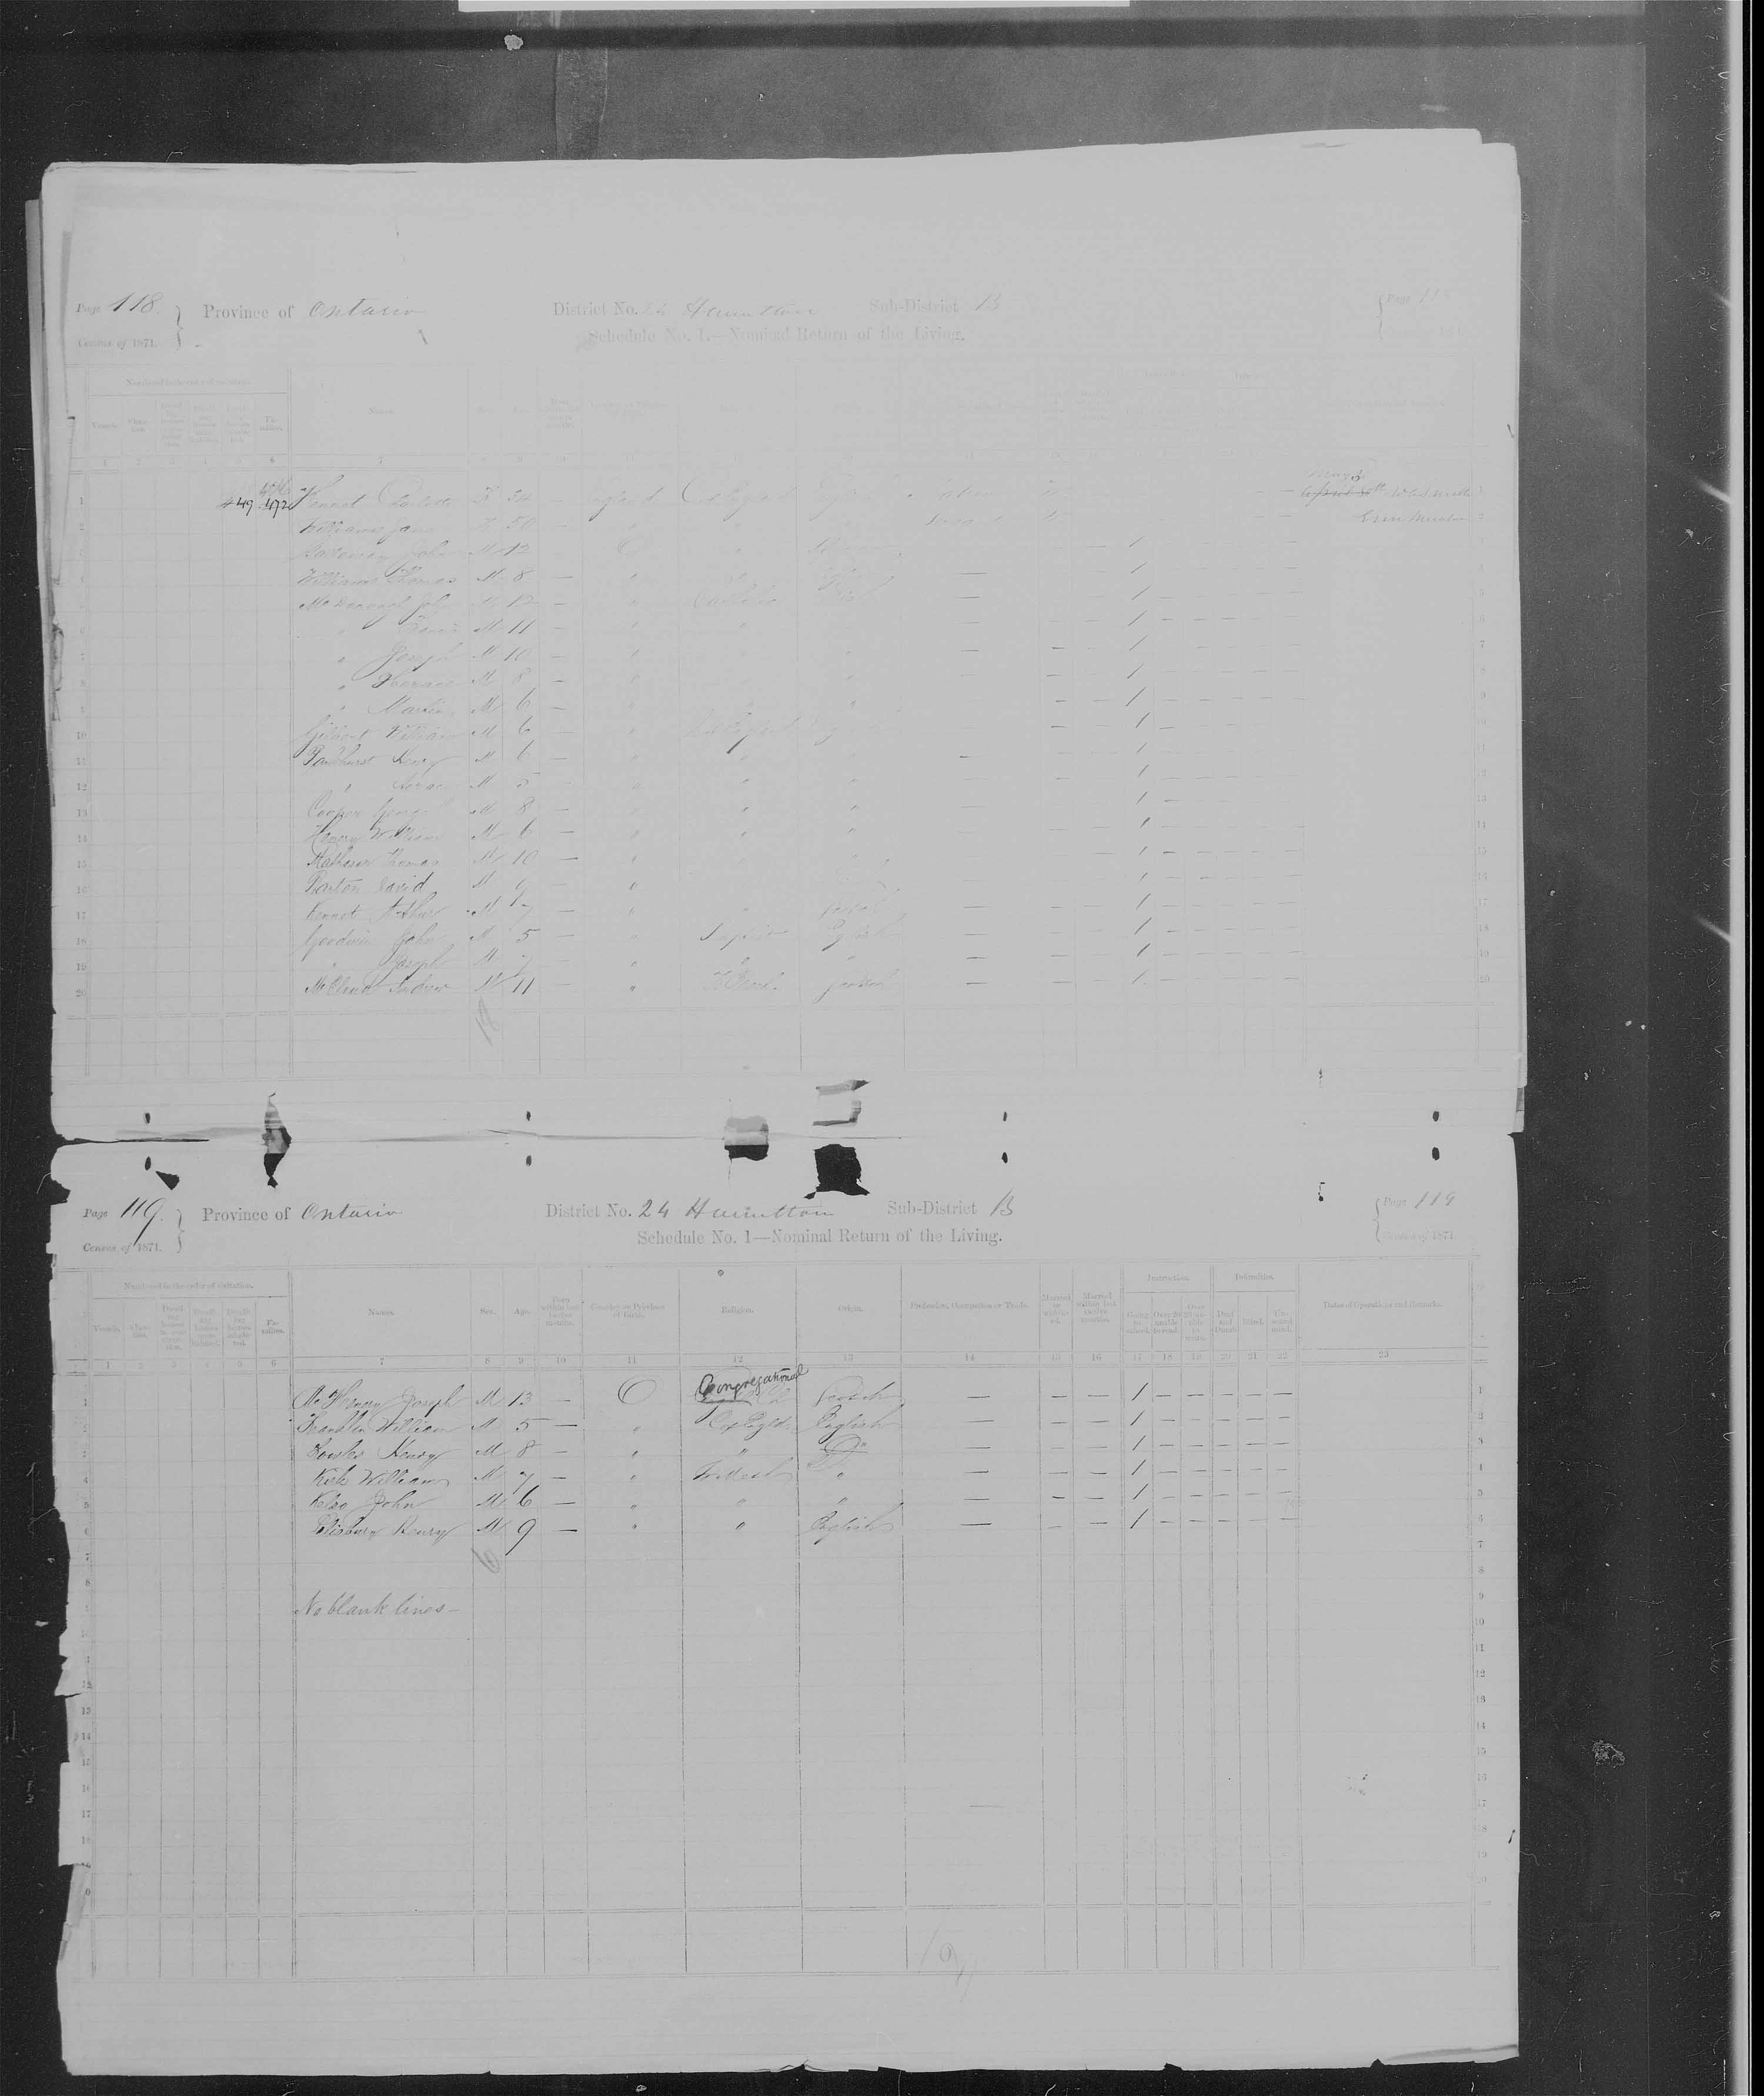 Title: Census of Canada, 1871 - Mikan Number: 142105 - Microform: c-9926